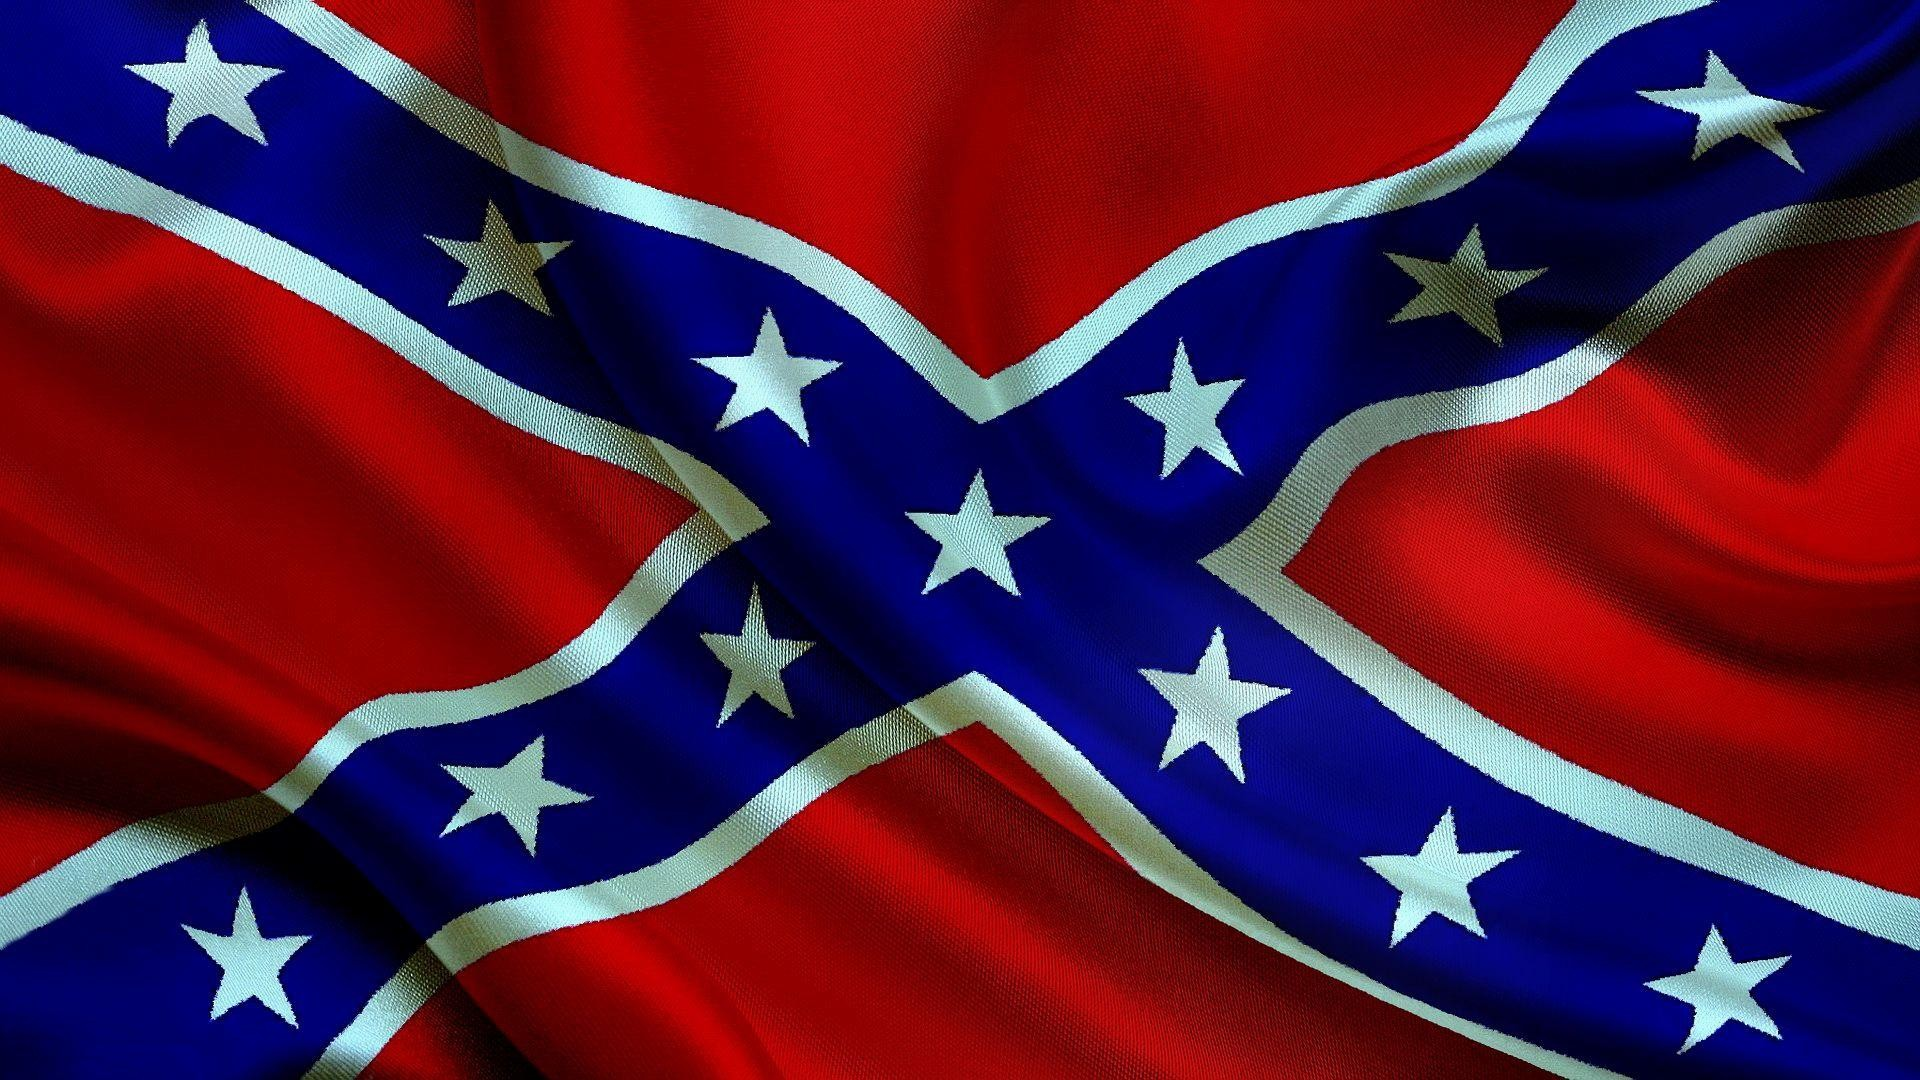 confederate flag wallpaper download free awesome hd wallpapers